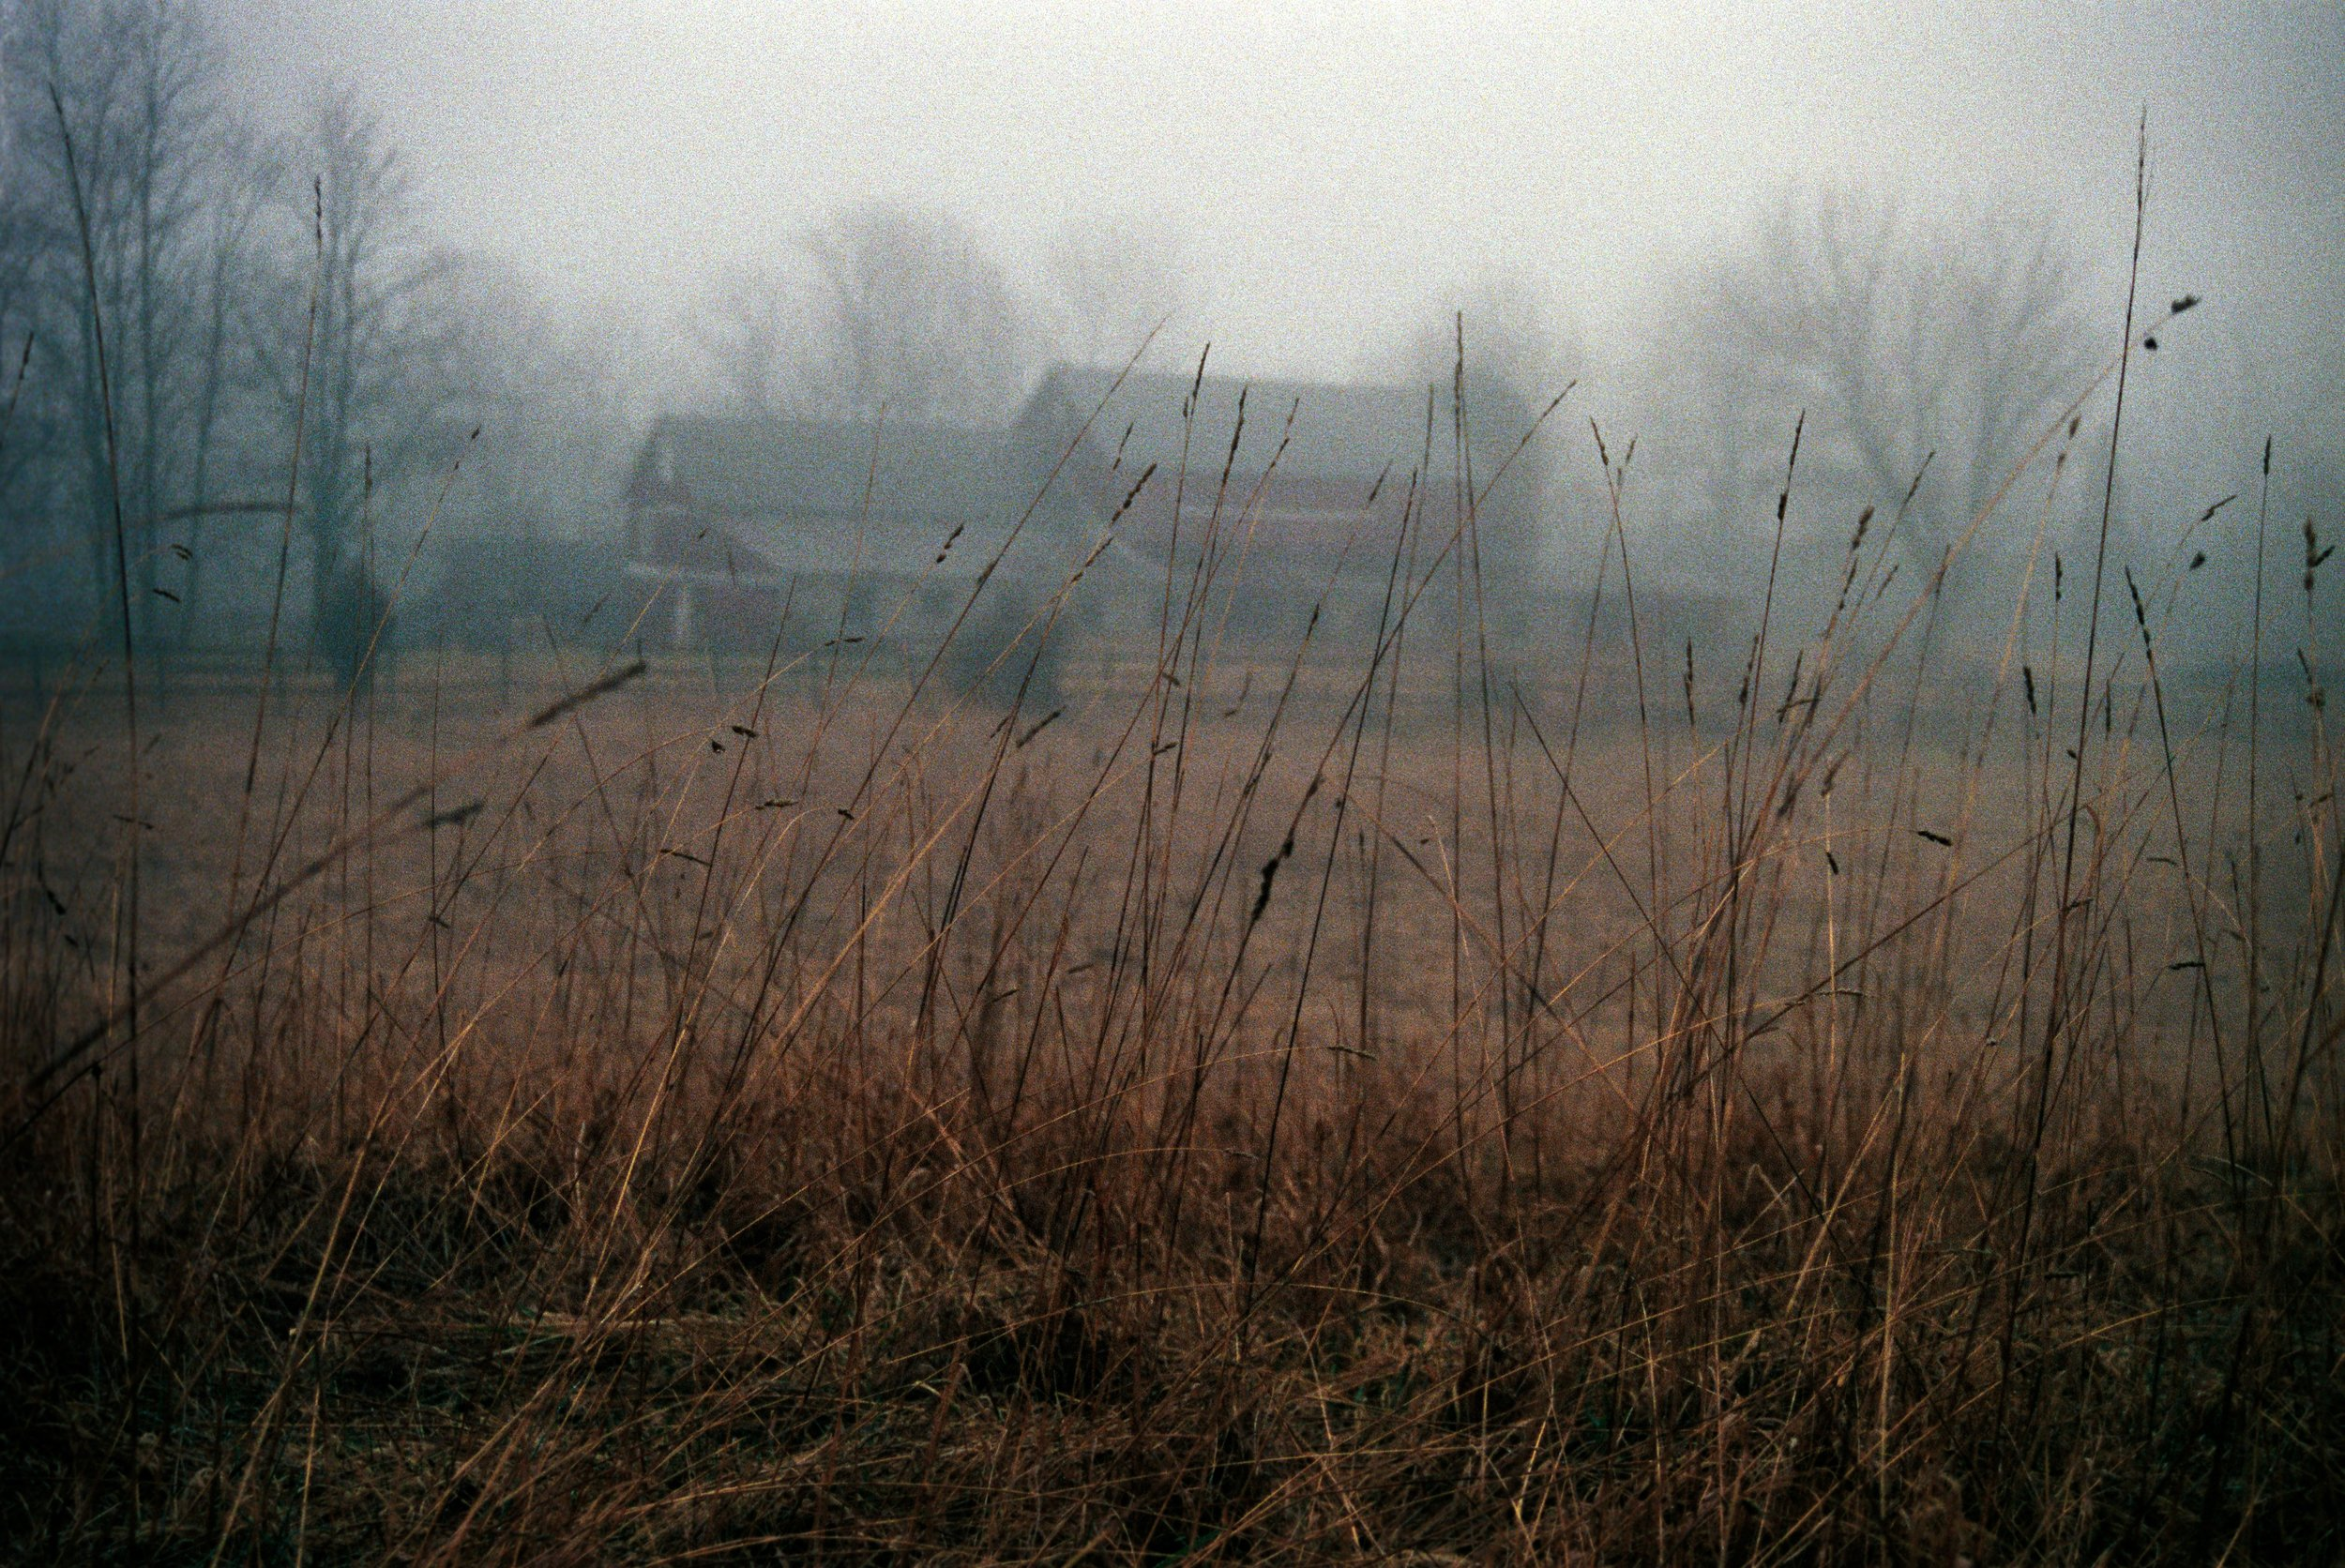 Blairstown - Home in the fog 1993